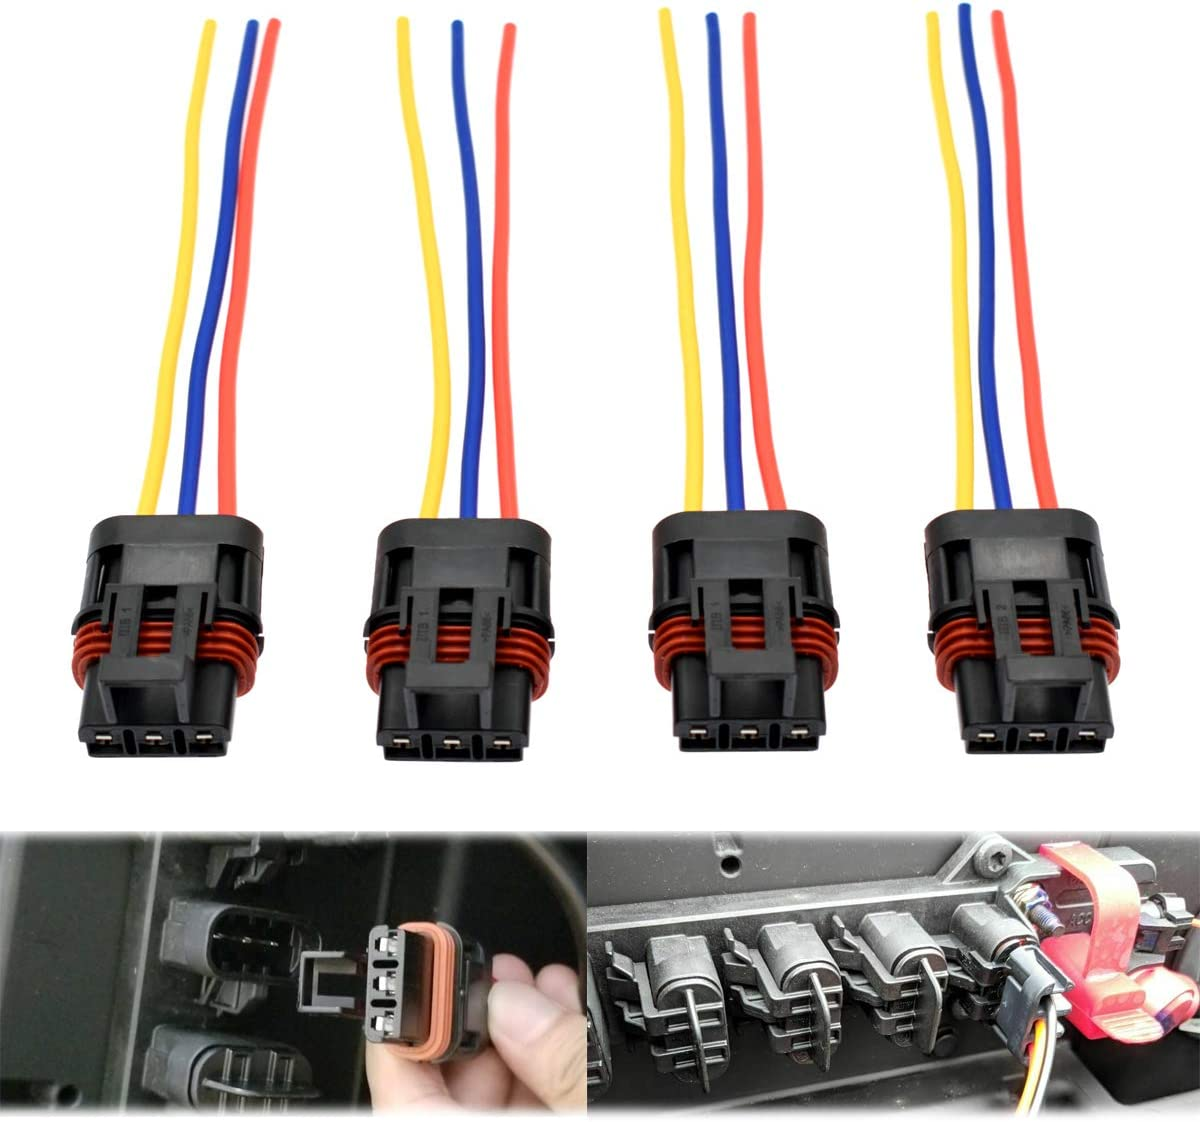 2018-2019 Polaris Ranger XP 1000 Pulse Busbar Polaris Electrical Accessory Harness Kit Works with all Polaris Interior Electrical Accessories